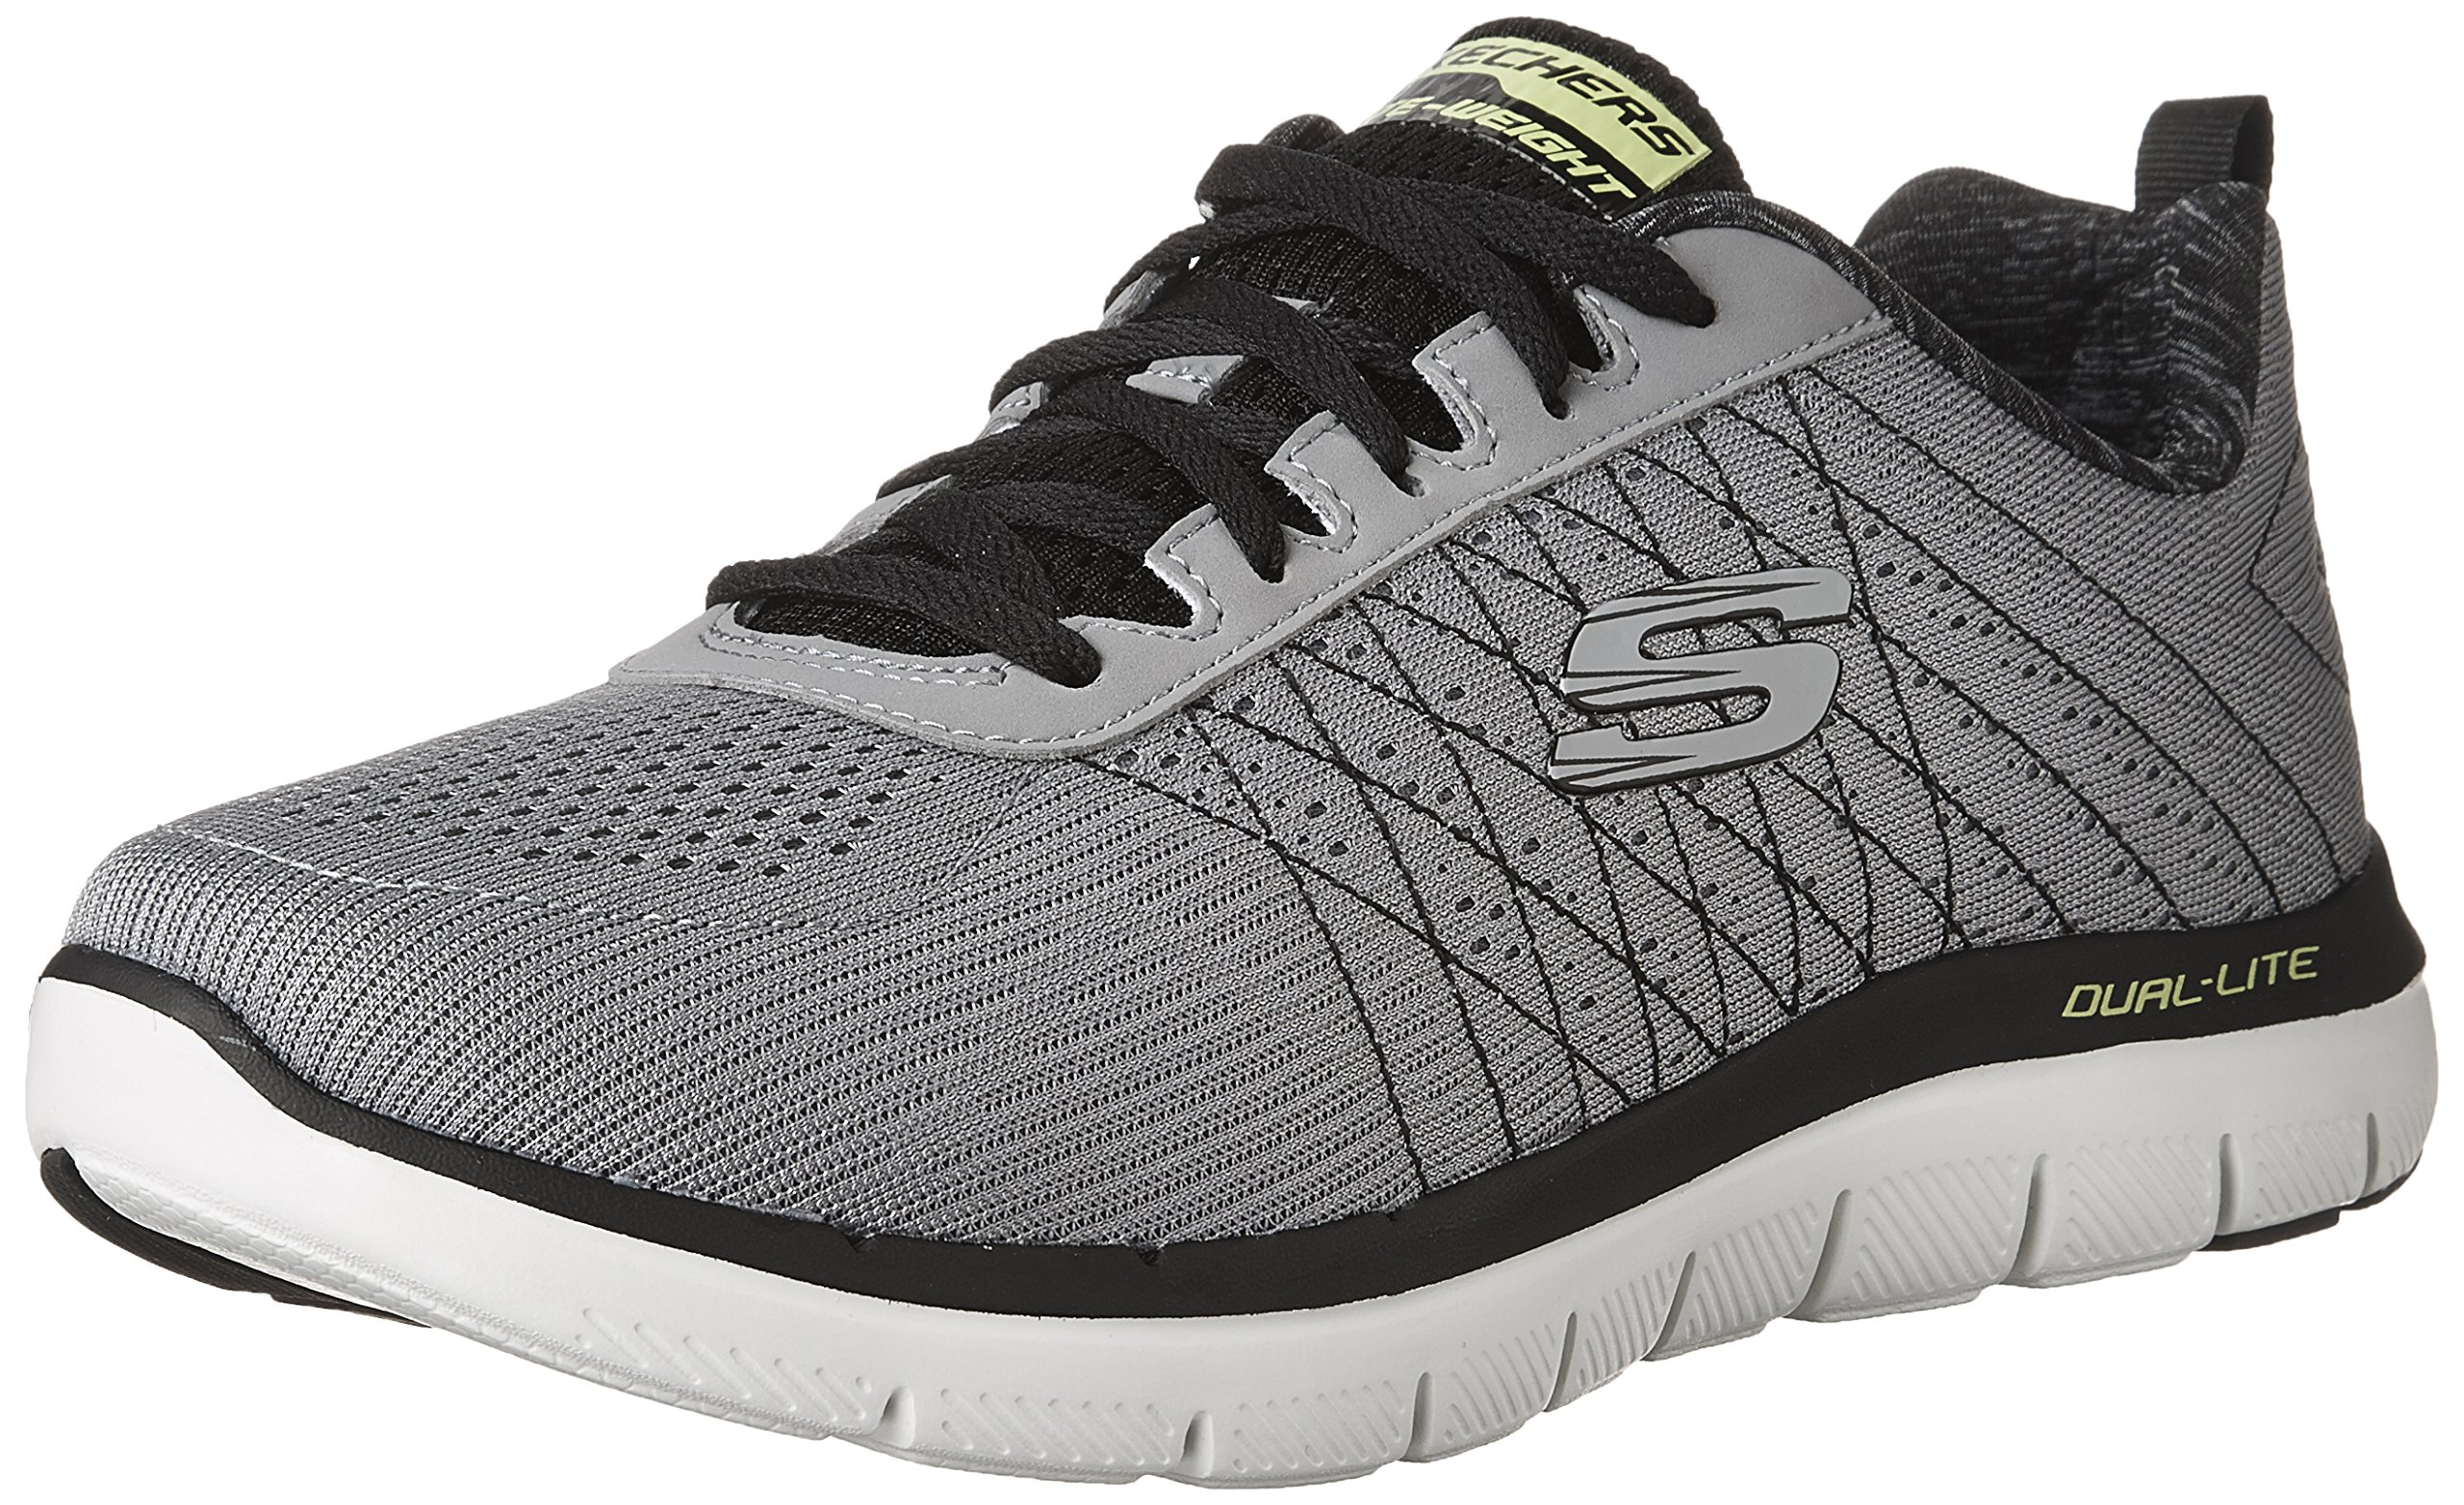 Skechers Sport Men's Flex Advantage 2.0 The Happs Oxford,Light Gray/Black,10.5 2E US